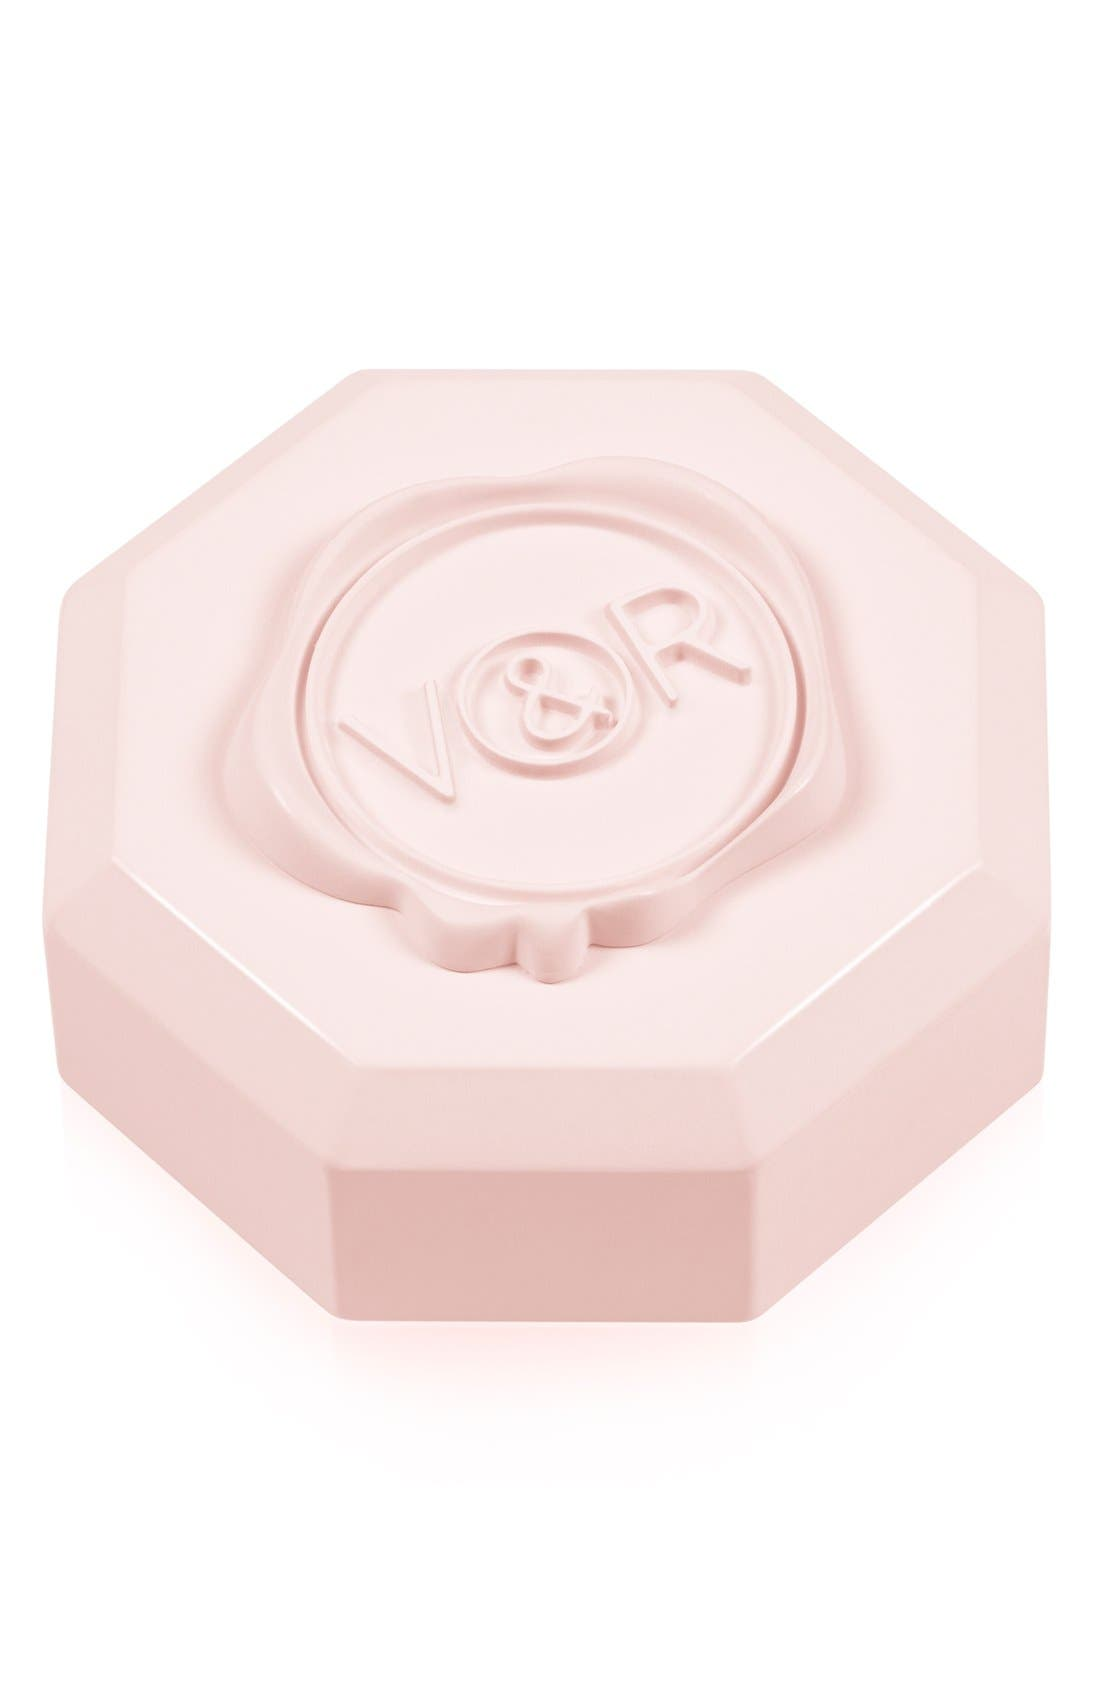 Flowerbomb Soap,                             Main thumbnail 1, color,                             NO COLOR